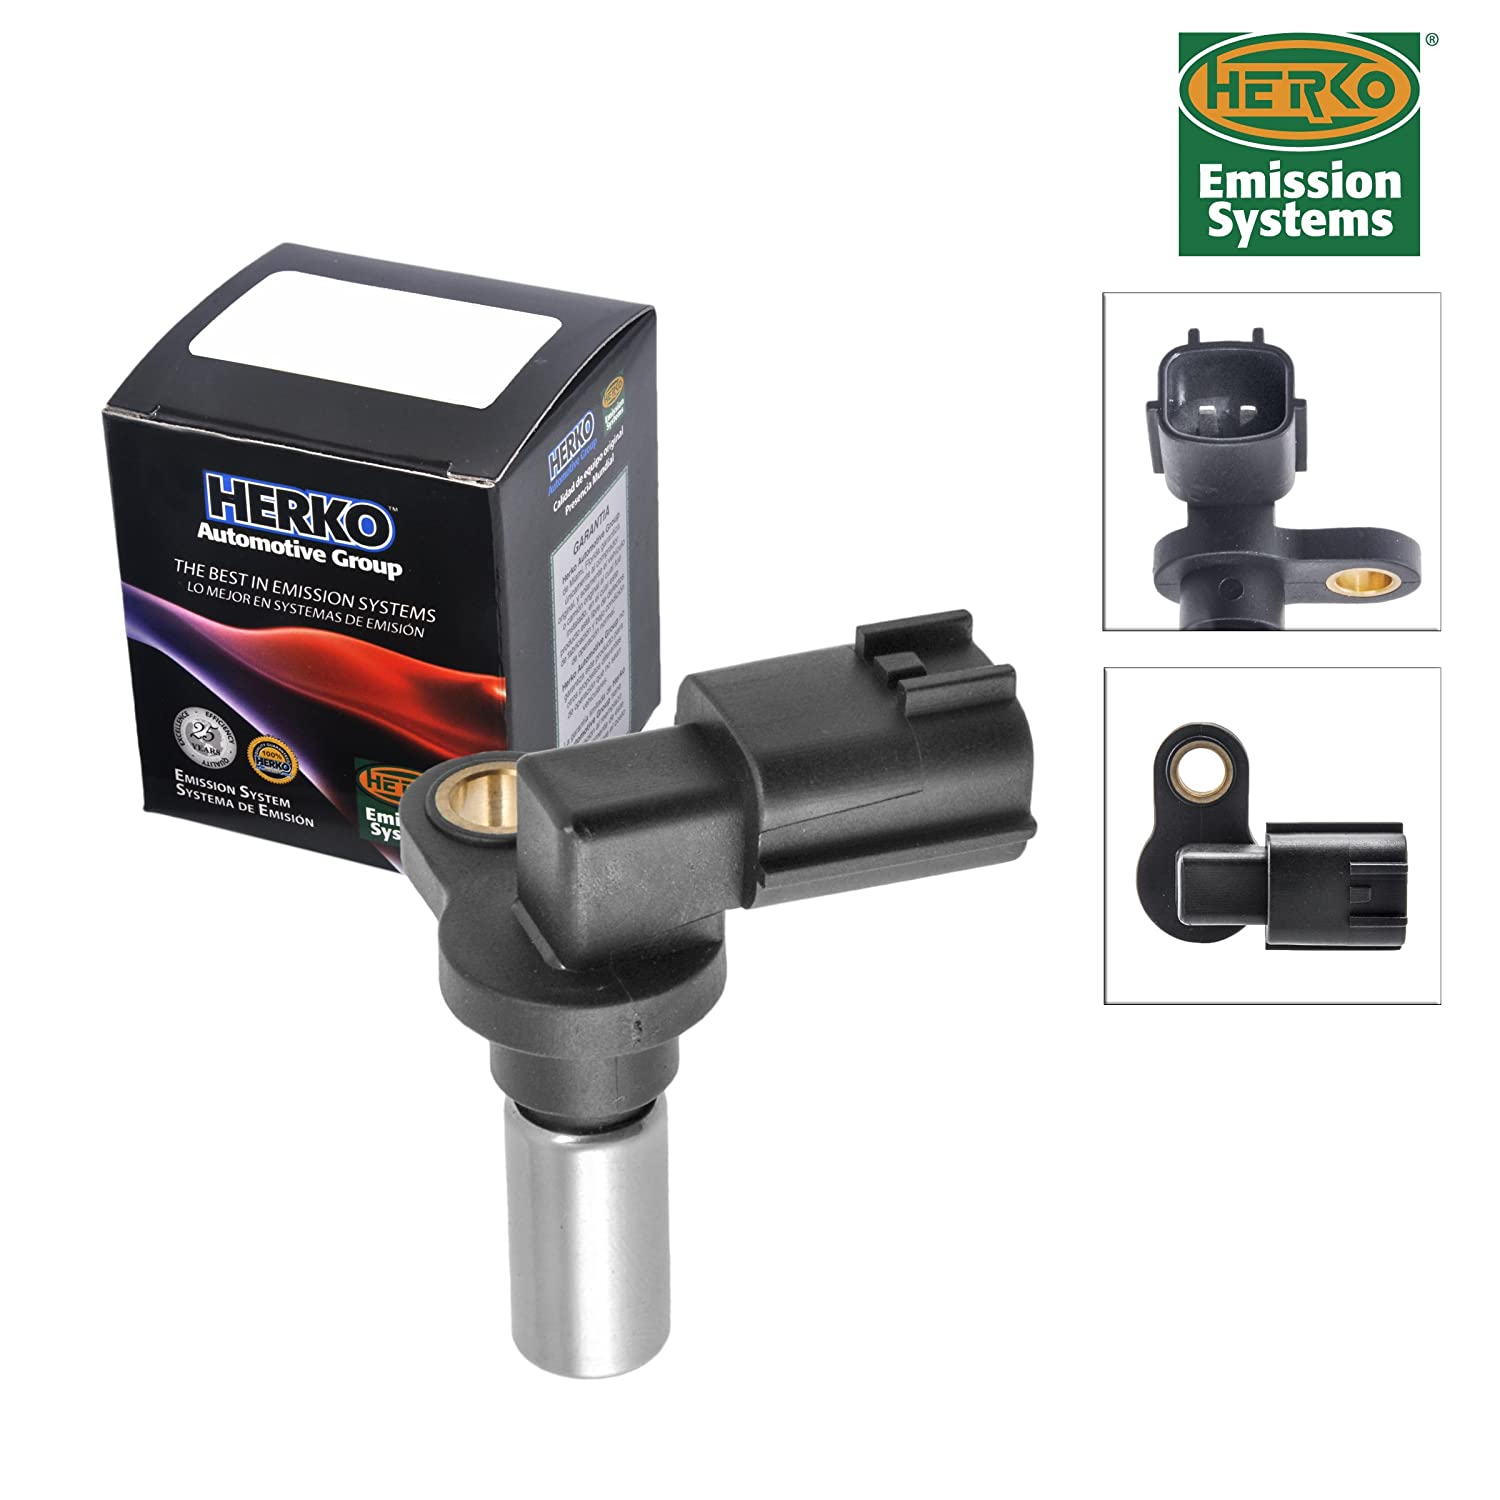 New Herko Crankshaft Position Sensor CKP2019 for Mercury and Nissan